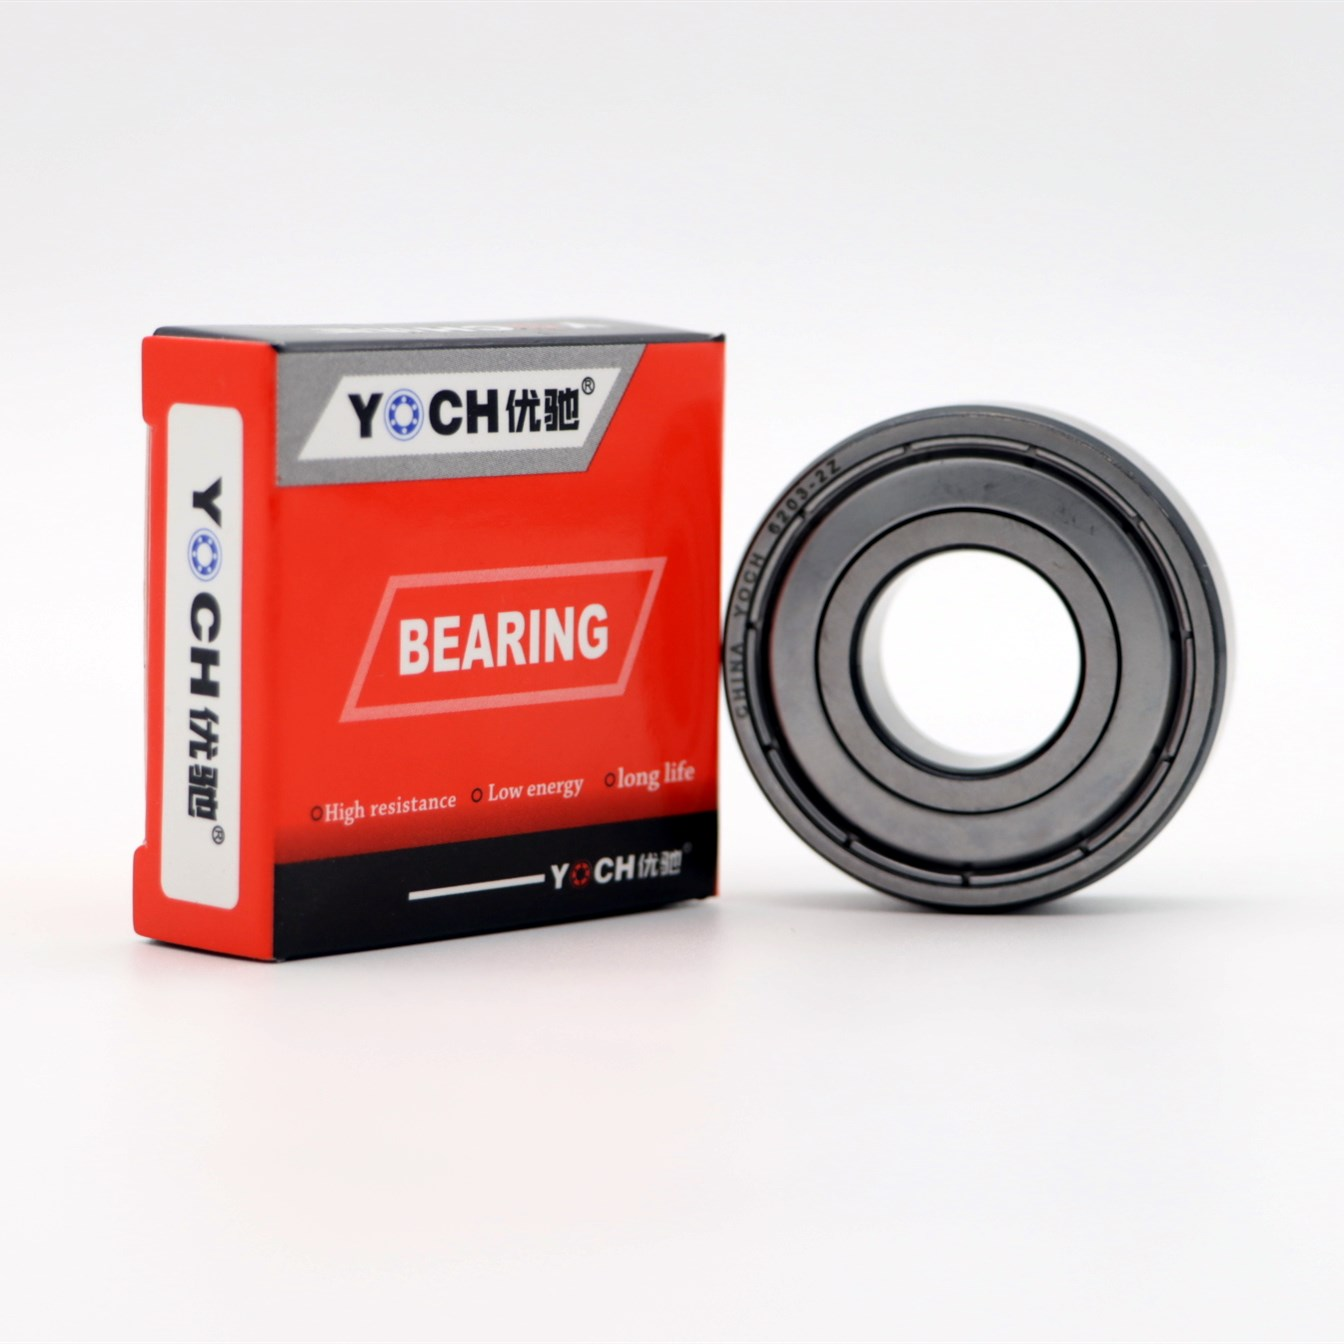 Best Selling /Distributor YOCH bearing High Performance Long Life 3000 Series Tapered Roller Bearing 33114 Auto Parts Bearing